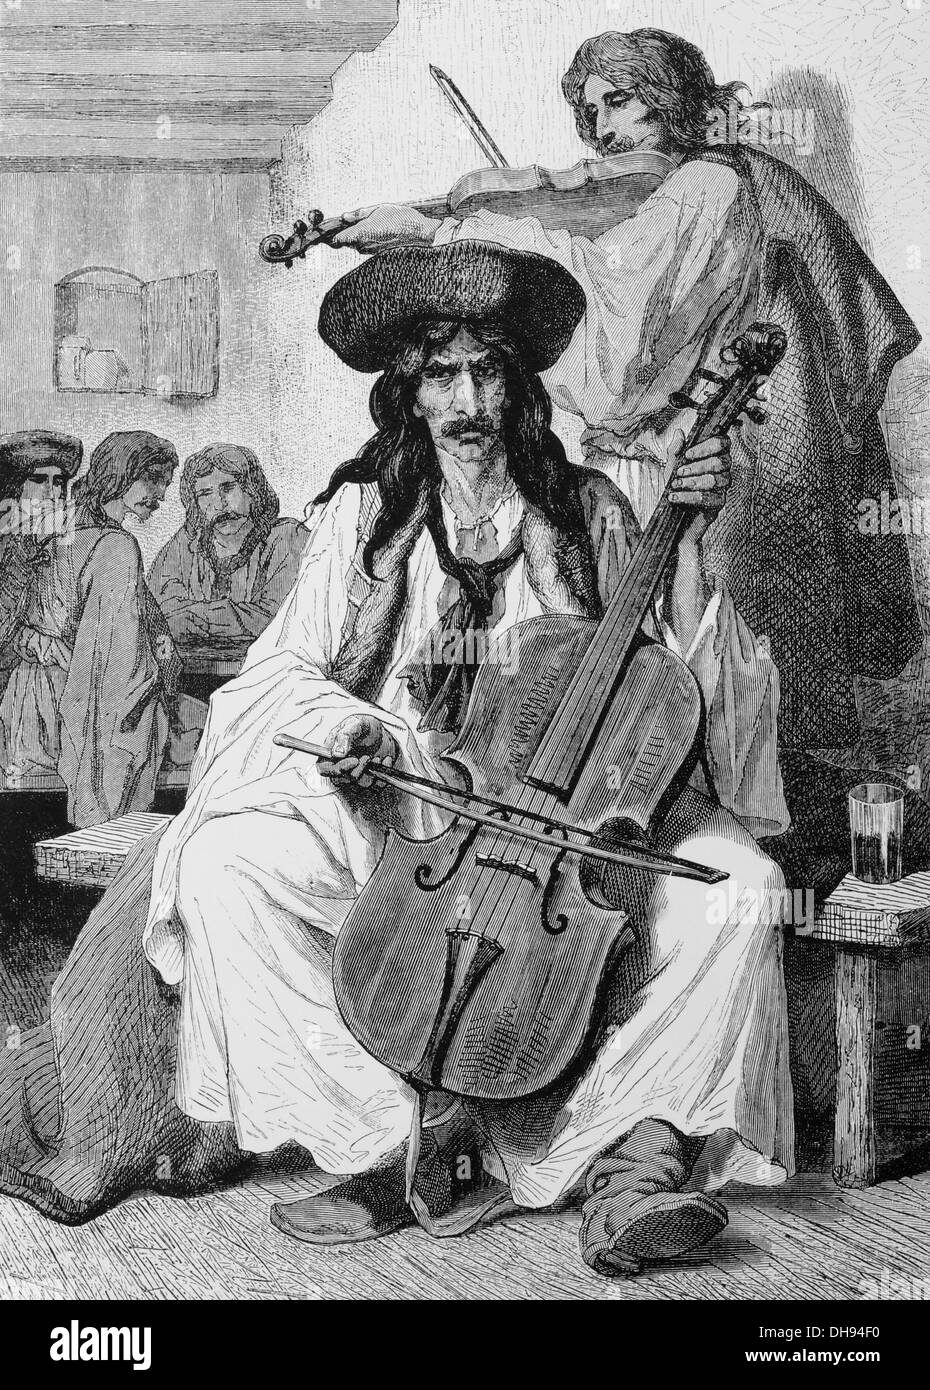 Europe. Gypsy musican in Hungary. 1800-1900. Engraving. 19th century. - Stock Image